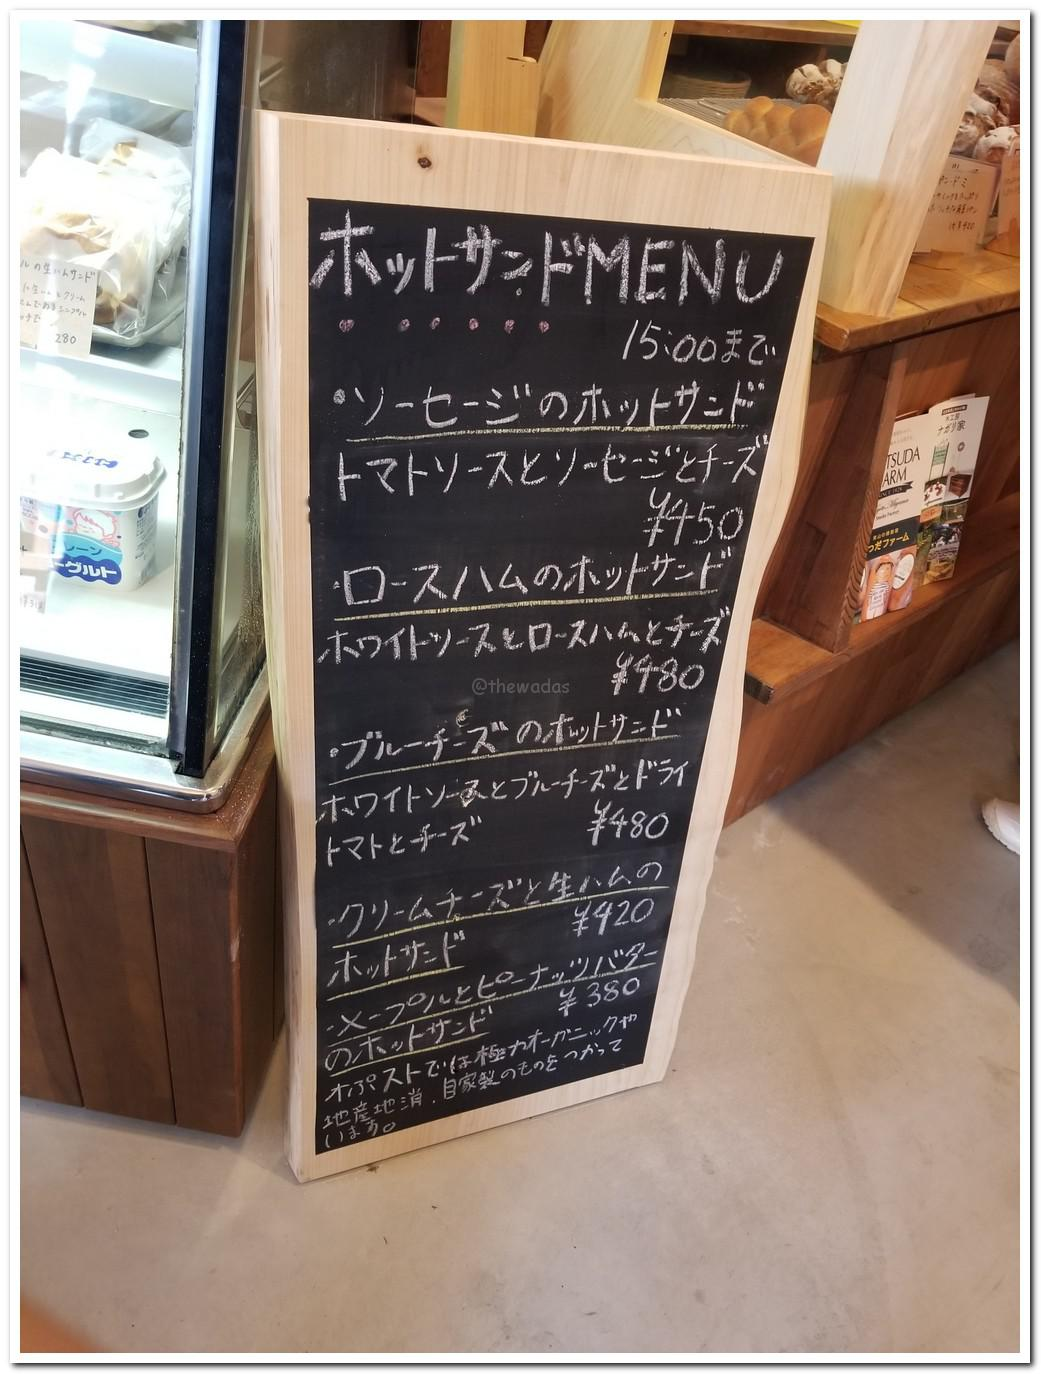 Bakery Obst in Ushimado, Setouchi City